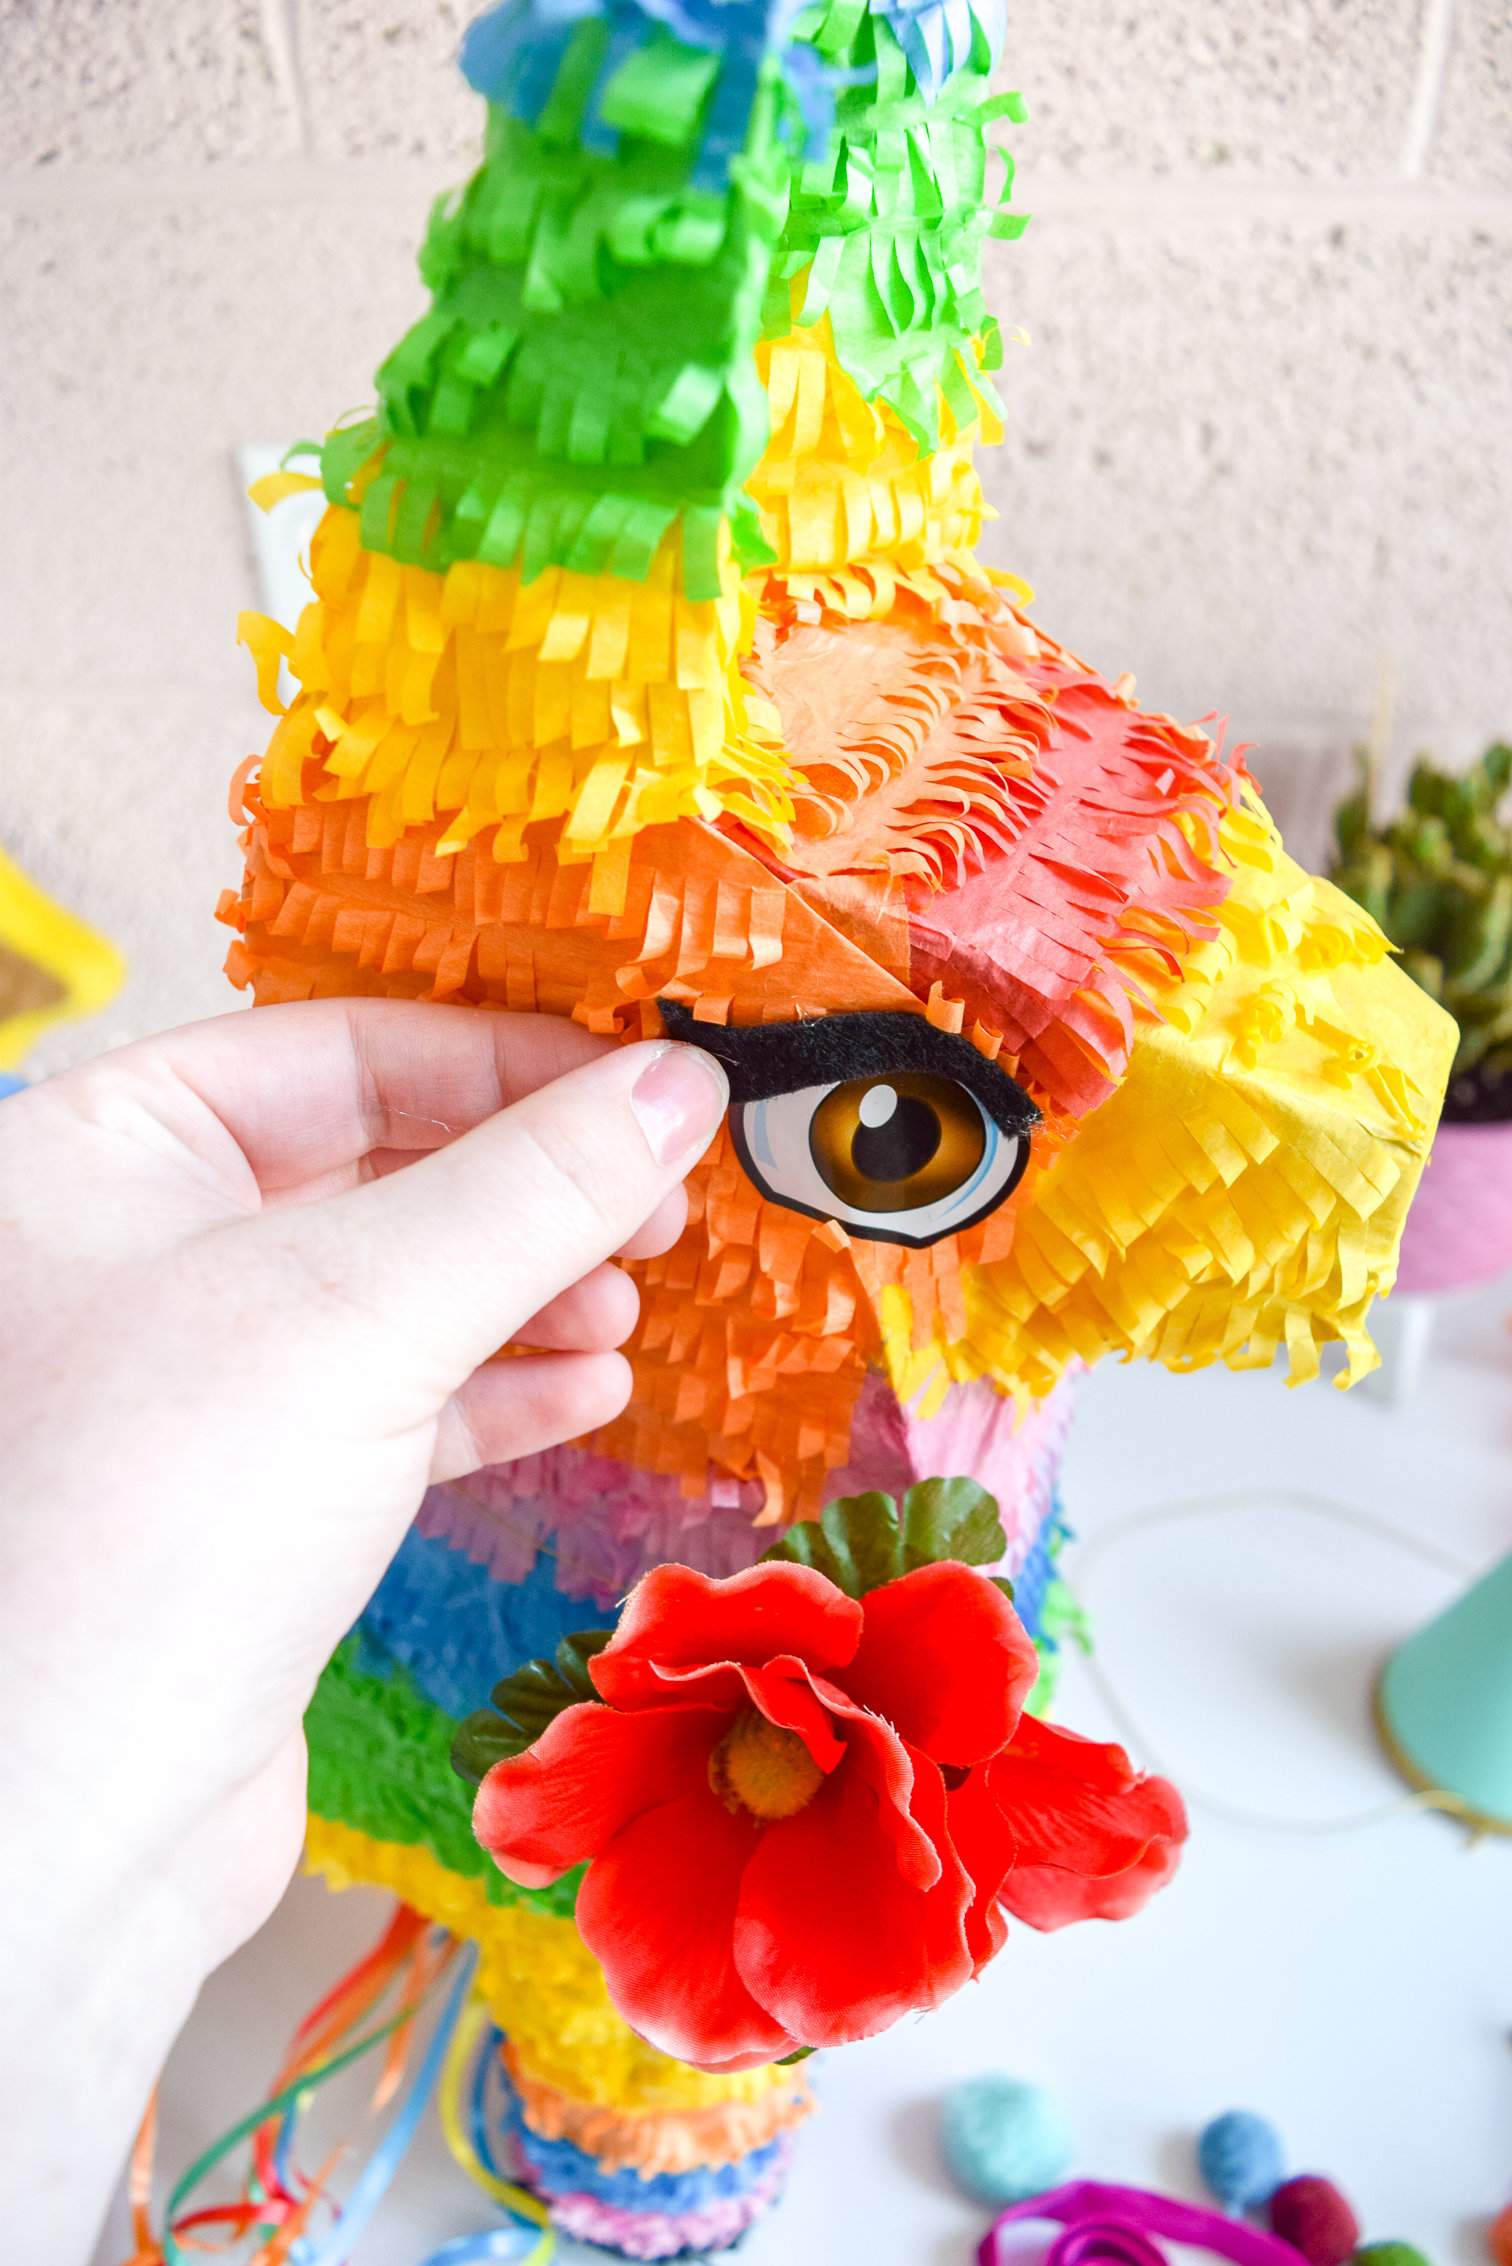 Miss Vanjie - my DIY Bougie piñata, was created to kick off my Cinco de Mayo celebration planning, and as a tribute to S10 of RPDR's first eliminated queen. Grab a basic piñata and dress her up with a cat eye, some ribbons, and lots of tinsel tassels.